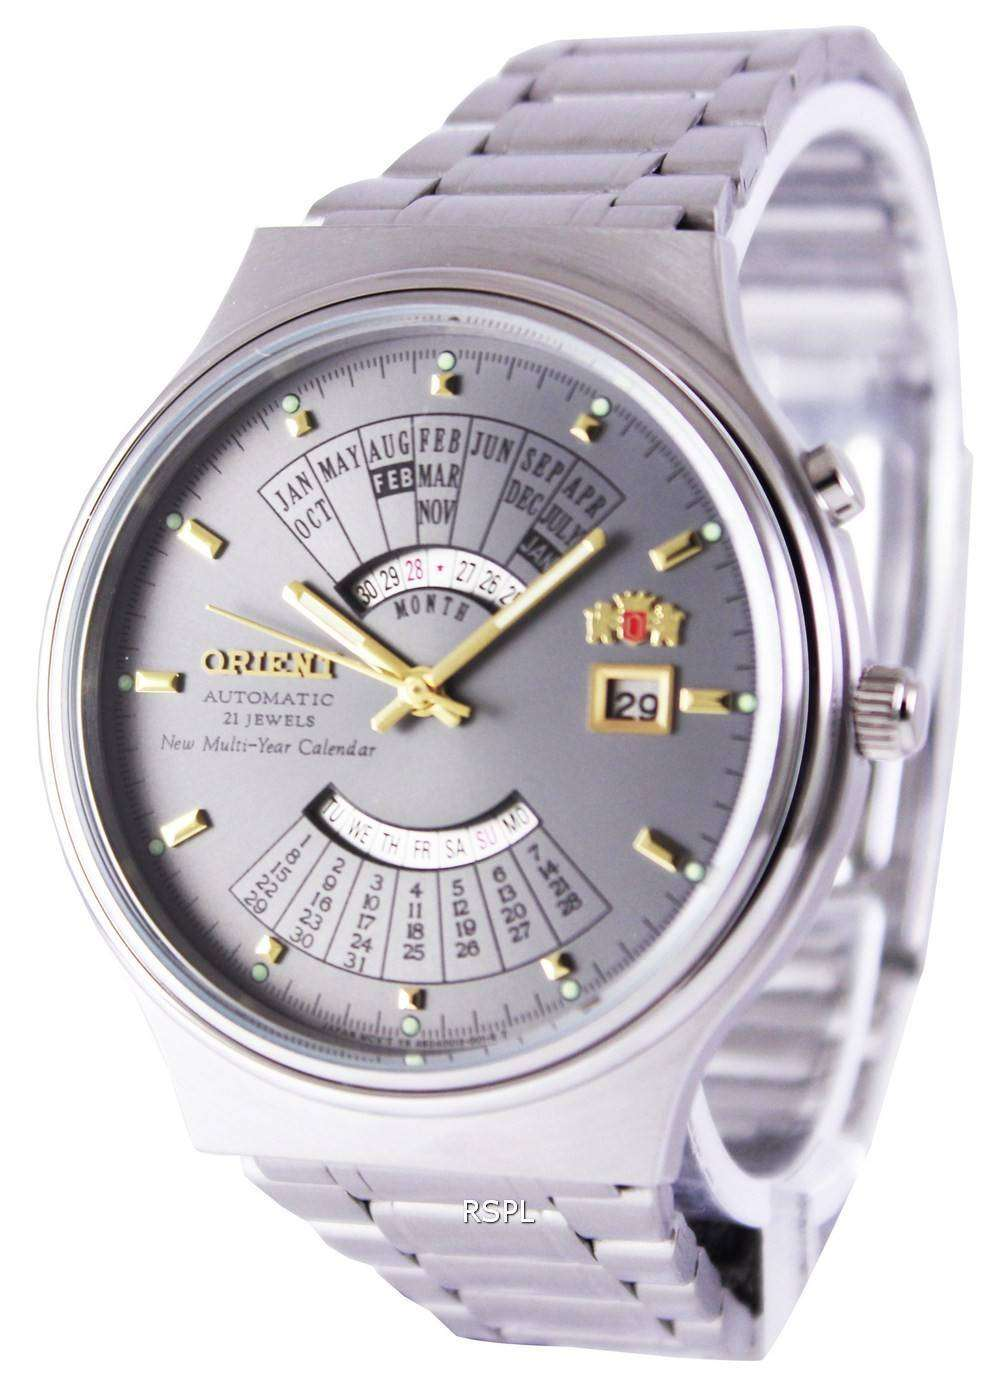 5011b2314 Orient Automatic 21 Jewels Multi Year Calendar FEU00002KW Men's Watch